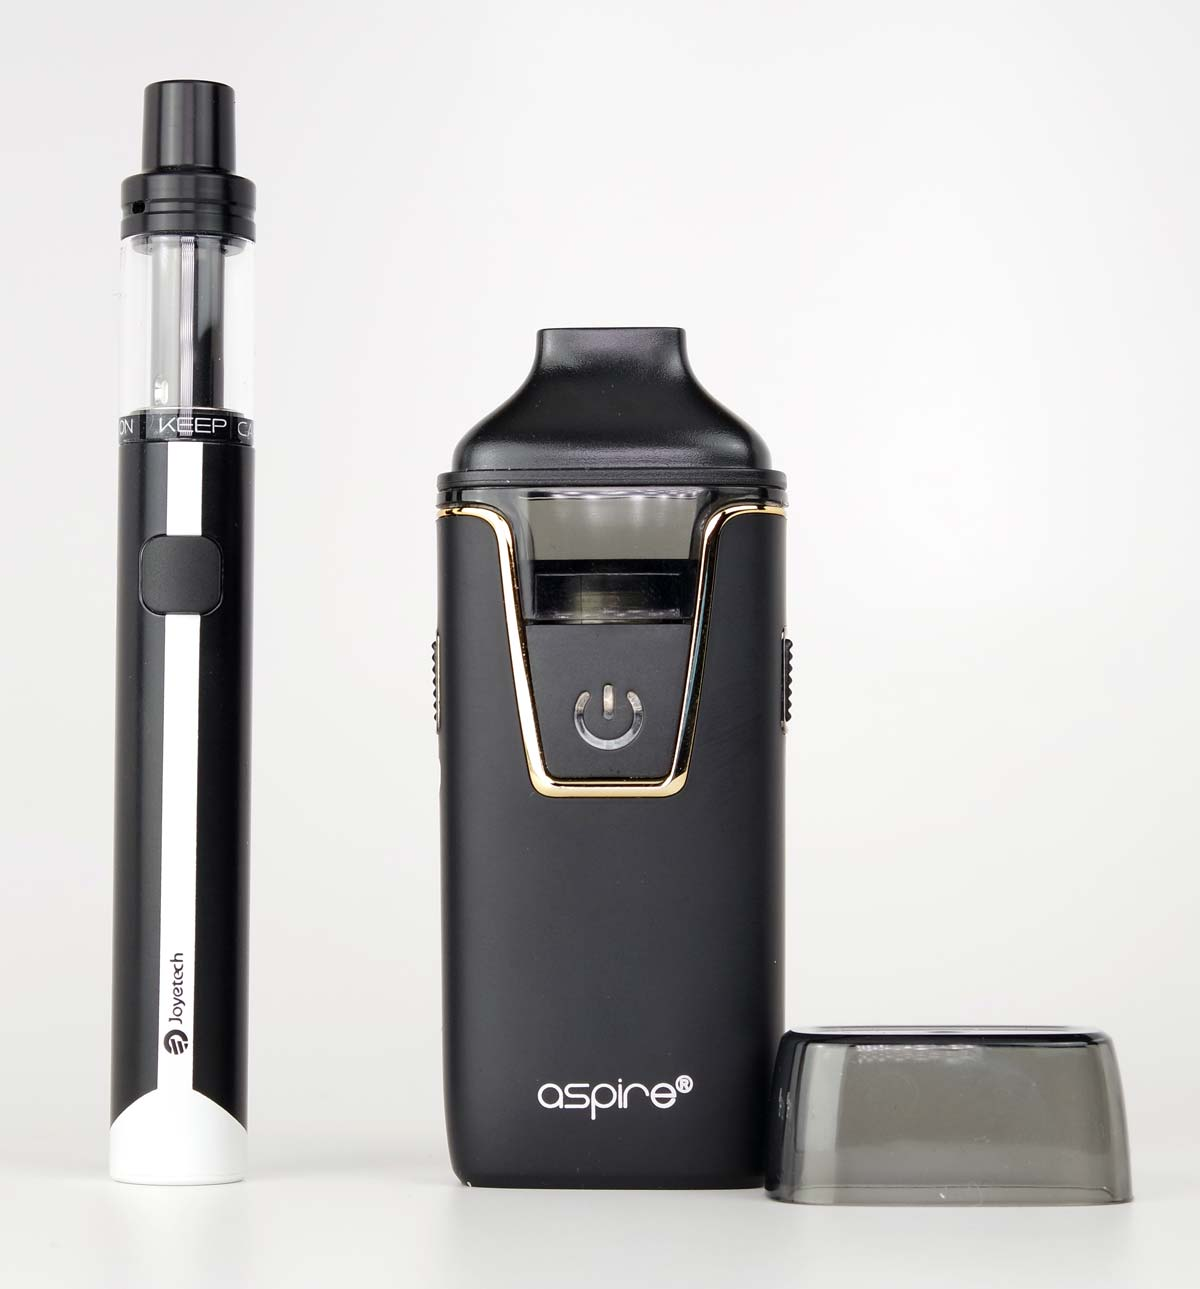 Joyetech AIO ECO with Aspire Nautilus AIO